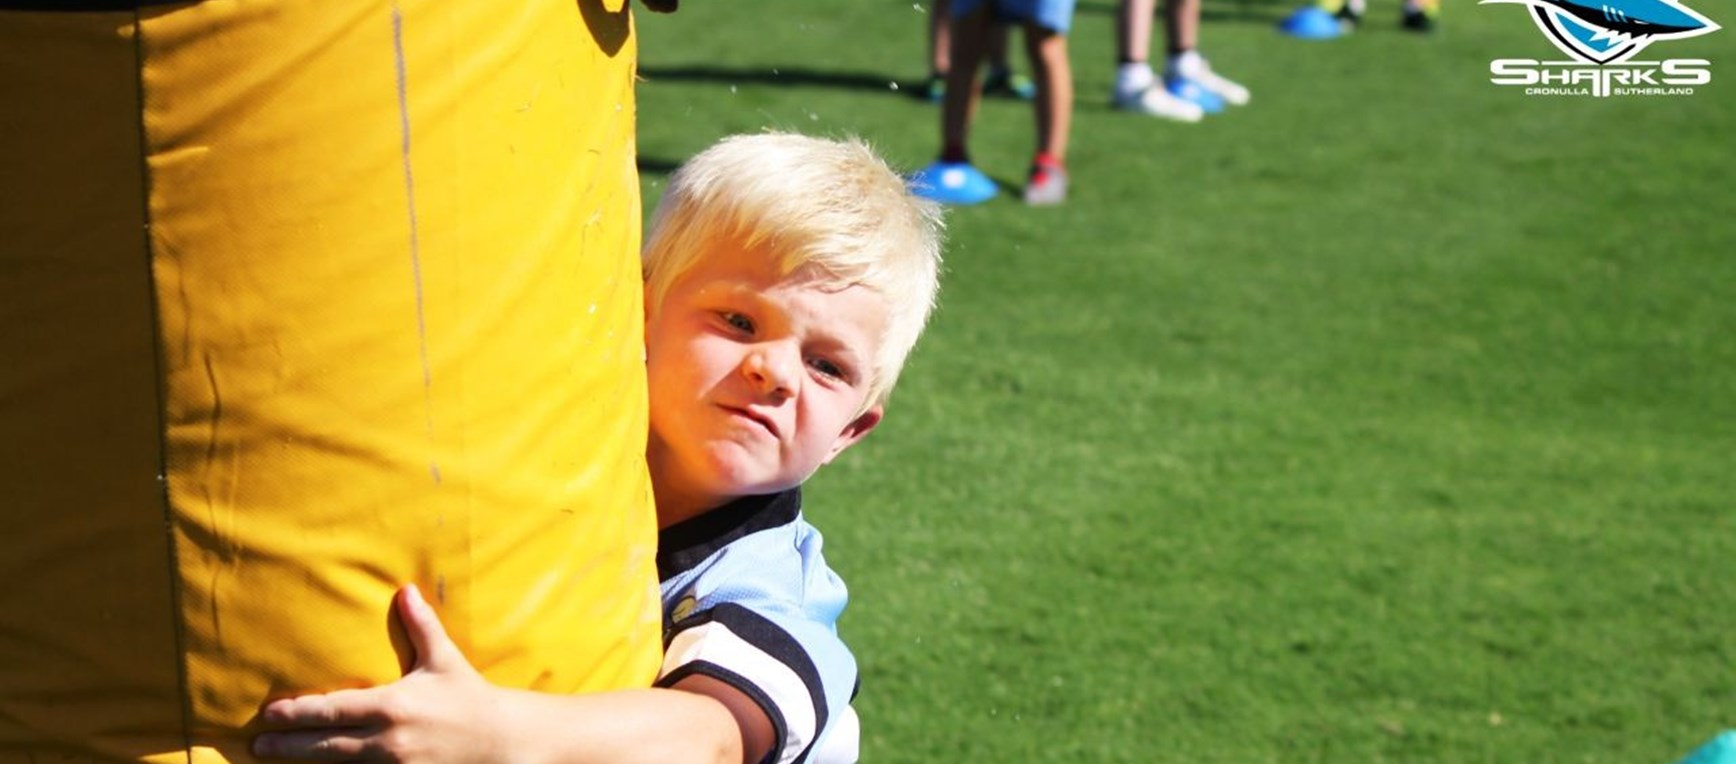 GALLERY | Junior Clinics @ Shark Park